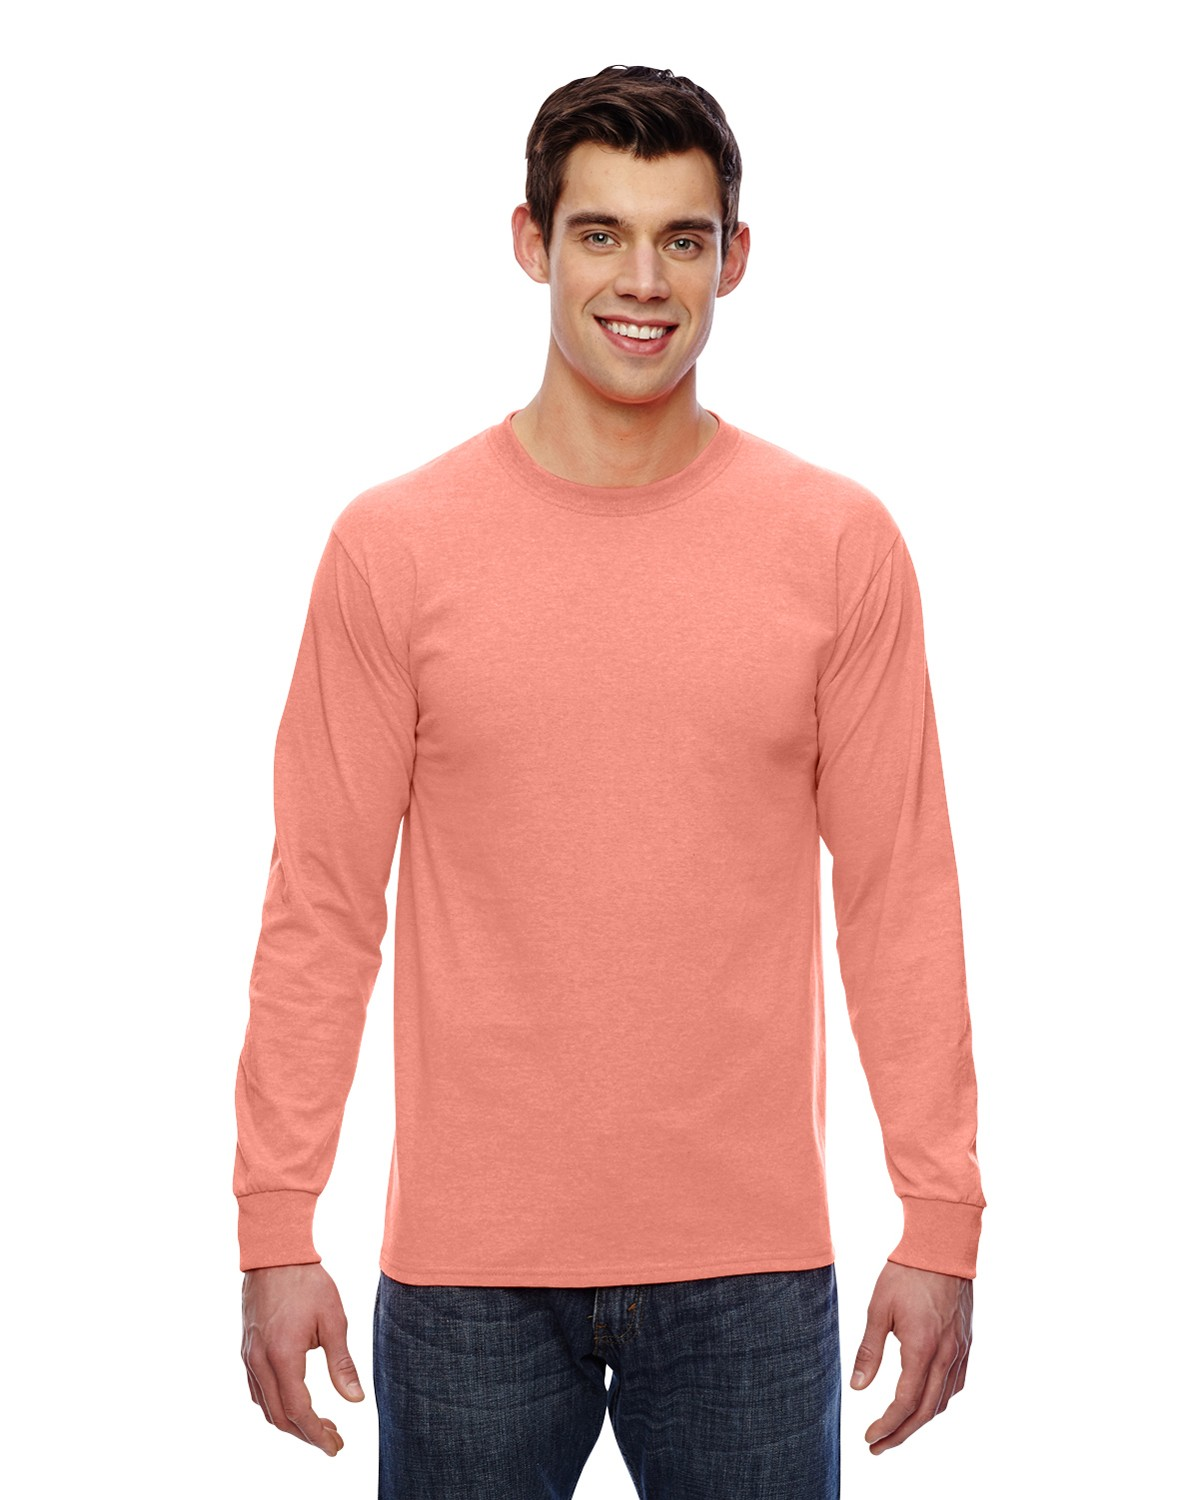 4930 Fruit of the Loom RETRO HTHR CORAL